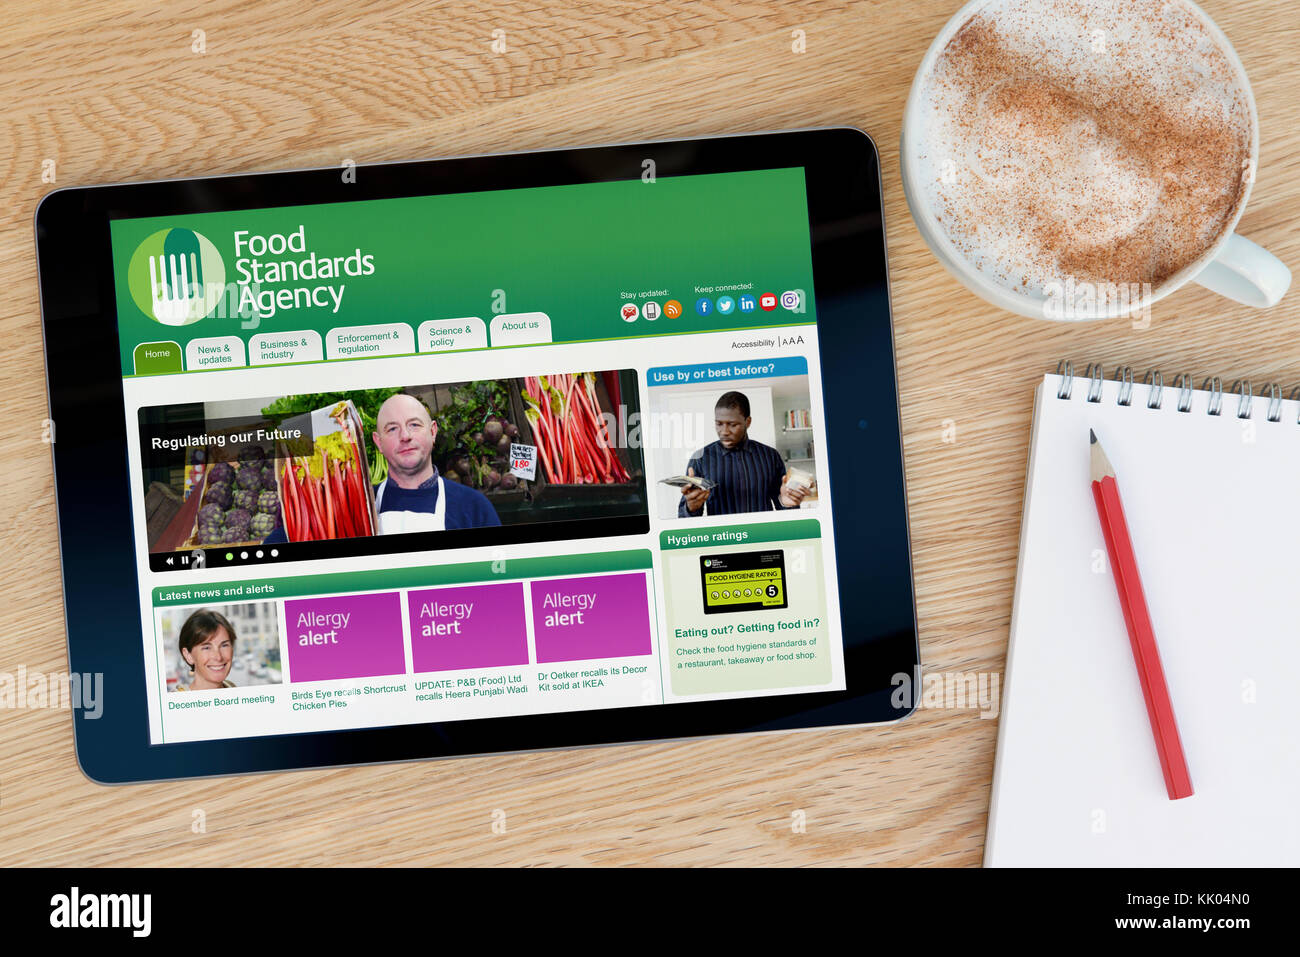 A man looks at the Food Standards Agency website on his iPad tablet device, shot against a wooden table top background - Stock Image